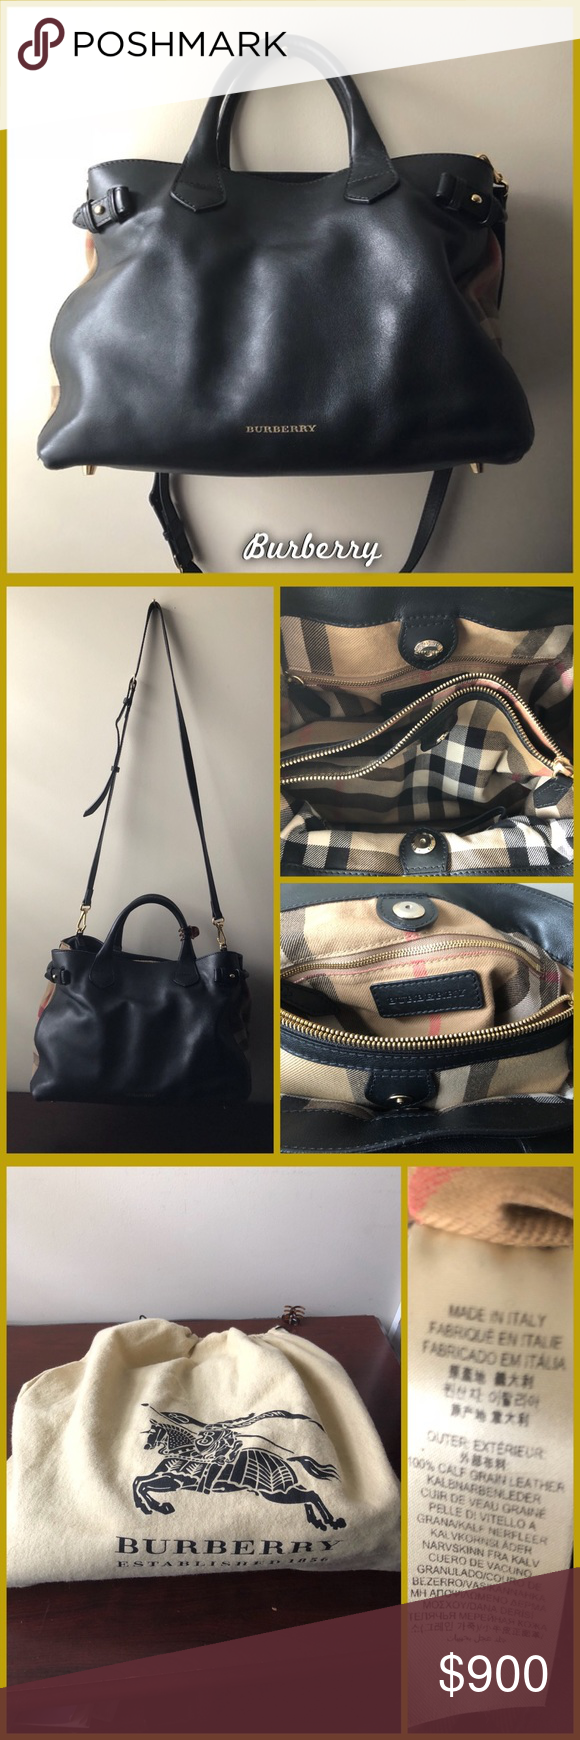 0e8706cd836 Burberry Banner Bag Medium Authentic Burberry Banner House check leather  tote in very gently loved condition, with no scratches or marks on the  leather.